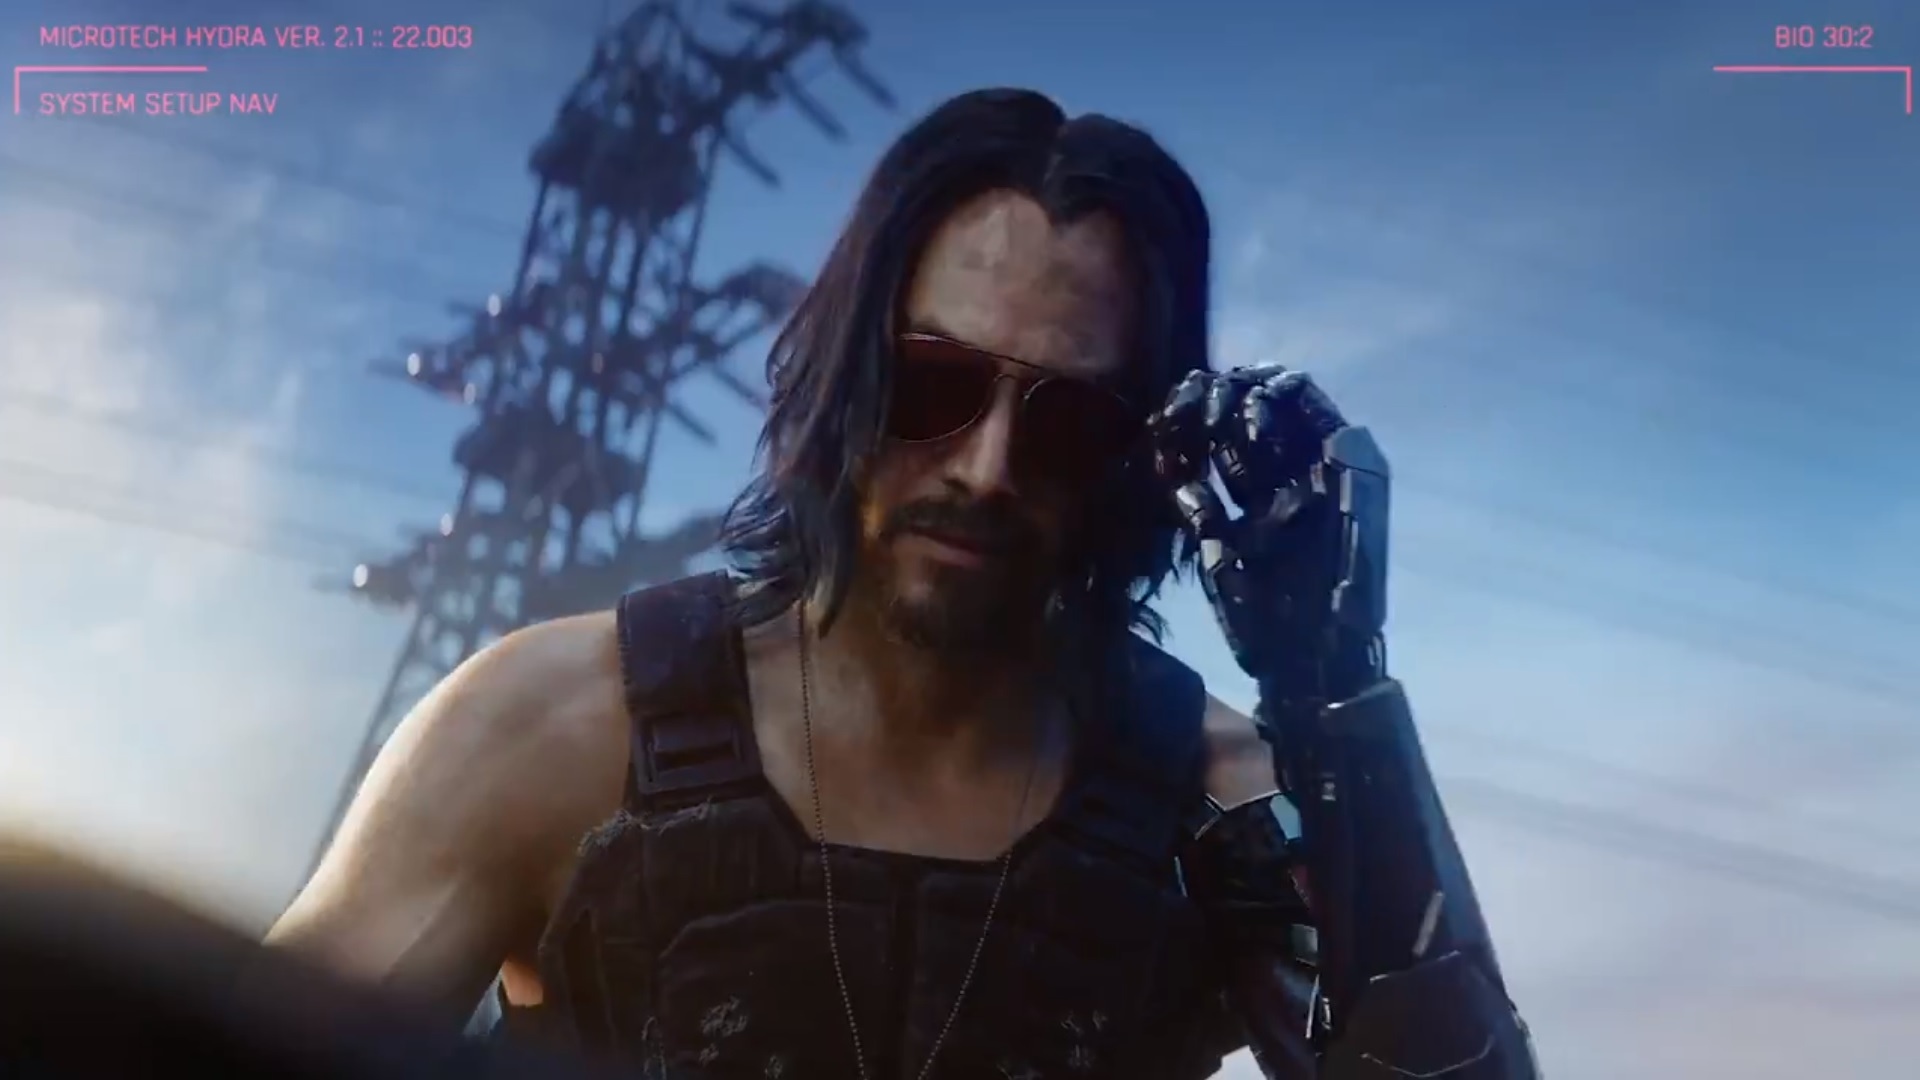 cyberpunk-2077-developer-has-become-the-victim-of-a-'targeted-cyber-attack'